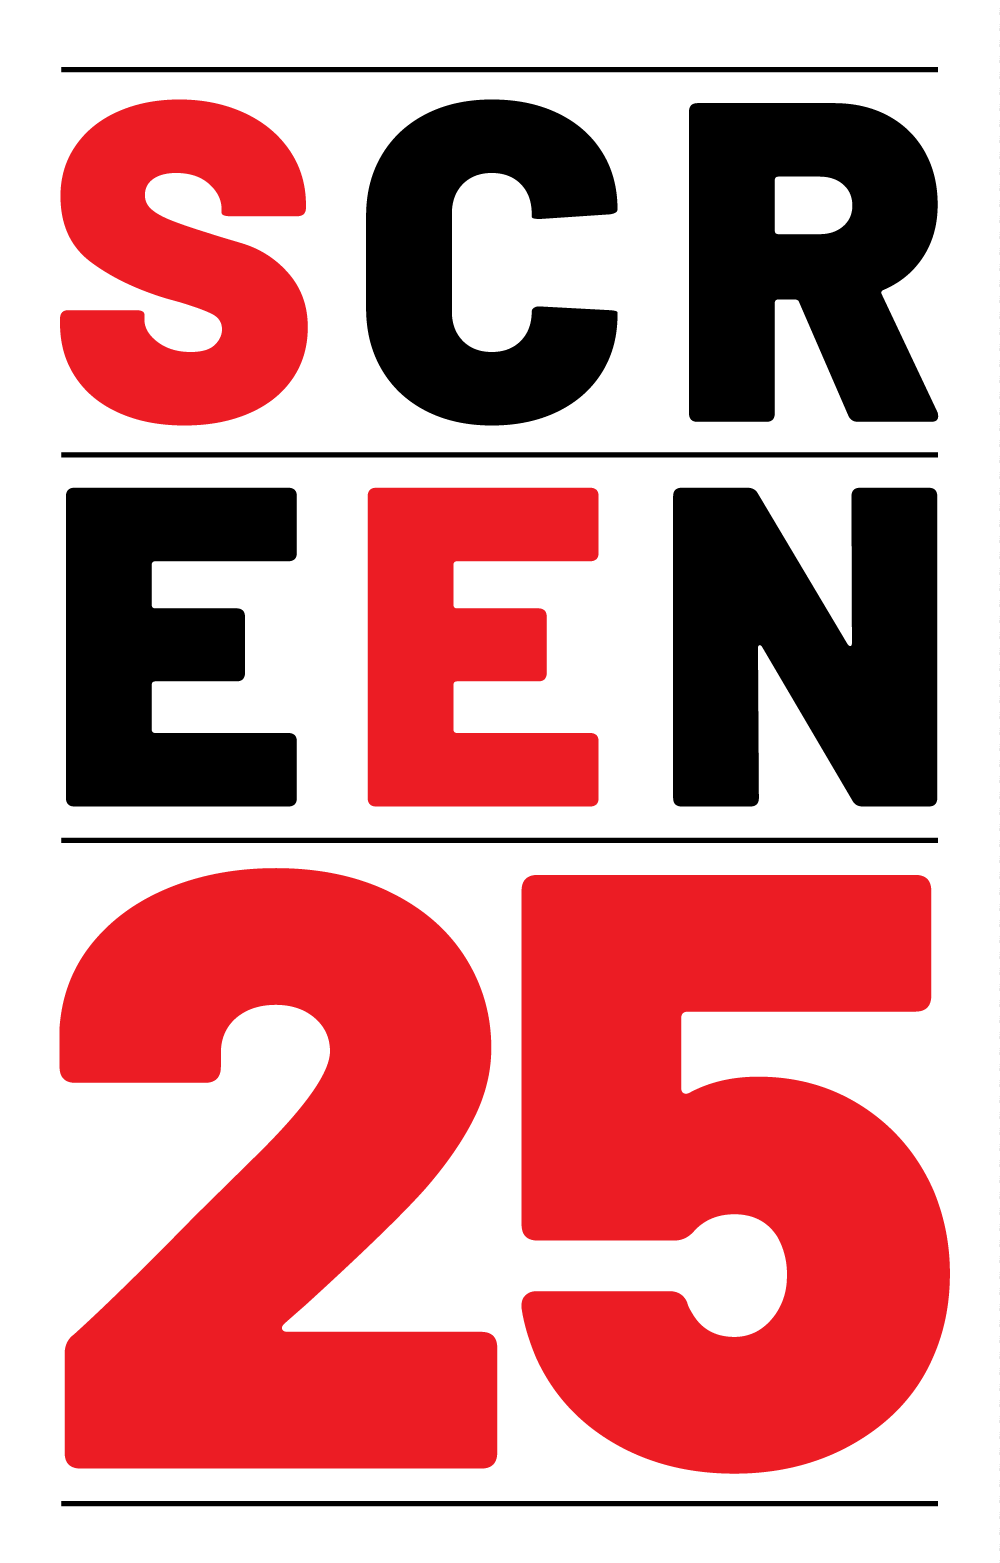 Screen25 - Affordable independent cinema in South Norwood